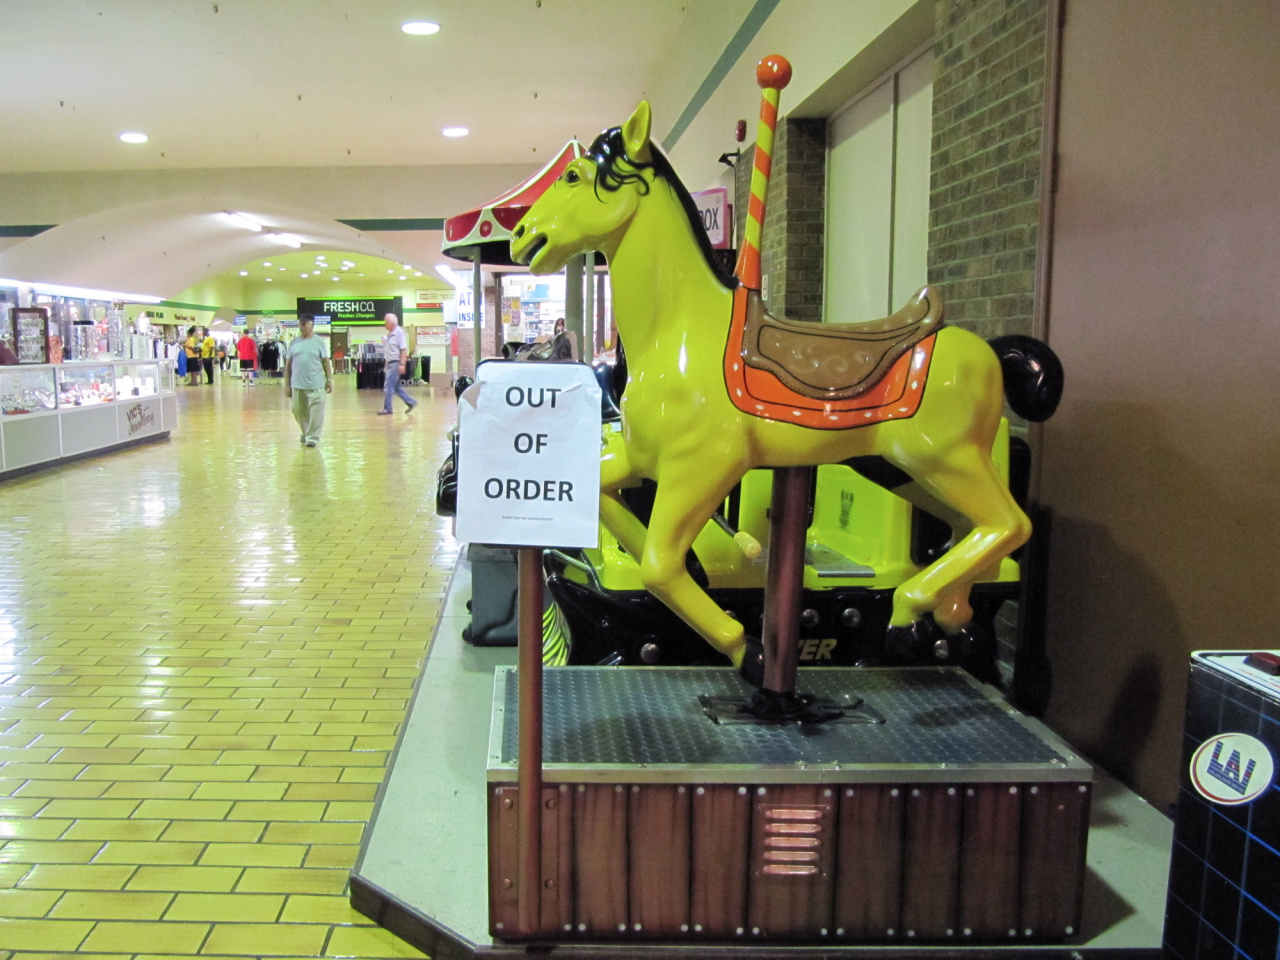 Shari Kasman, Out of Order Horse, 2013